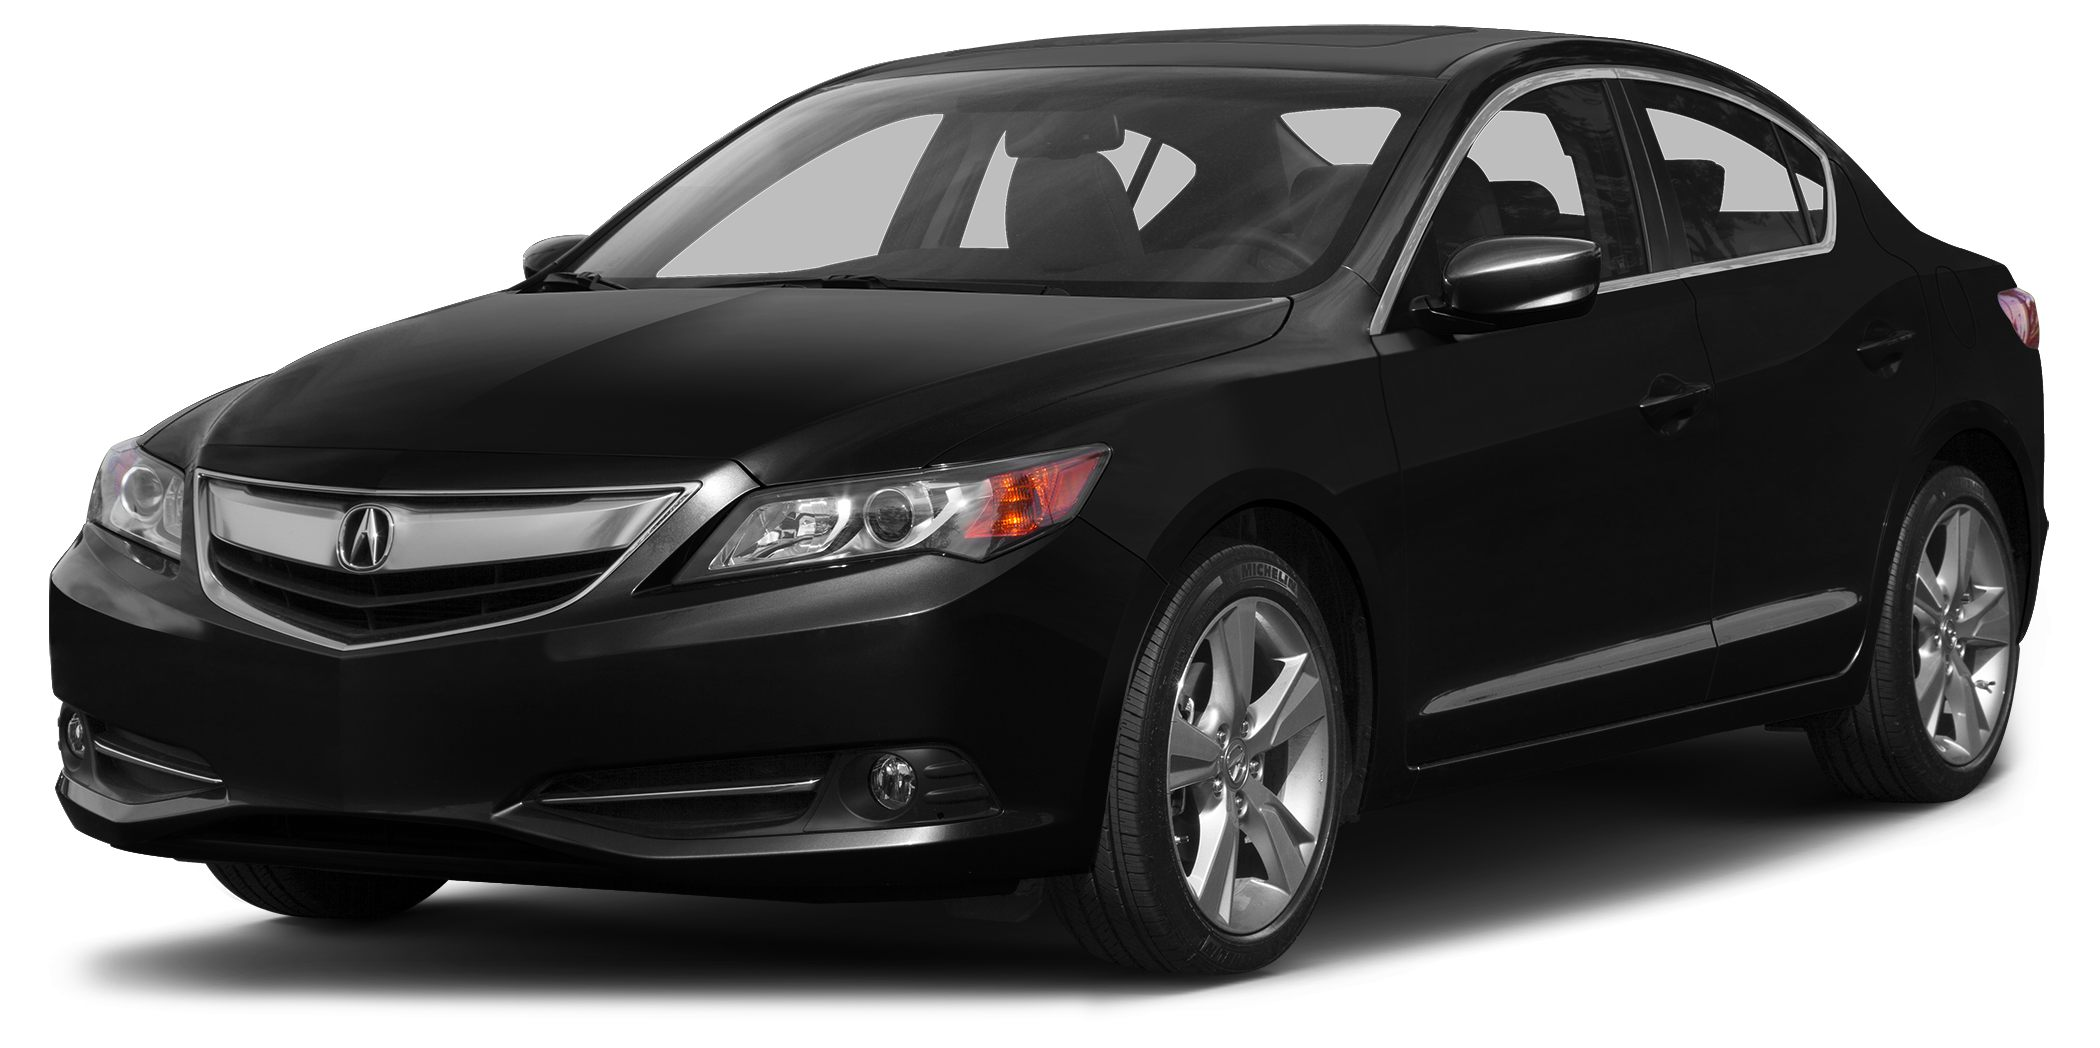 2013 Acura ILX 20 Premium LEATHER ROOF HEATED SEATS BACKUP CAMERA LOW MILES IMMACULATE CONDI